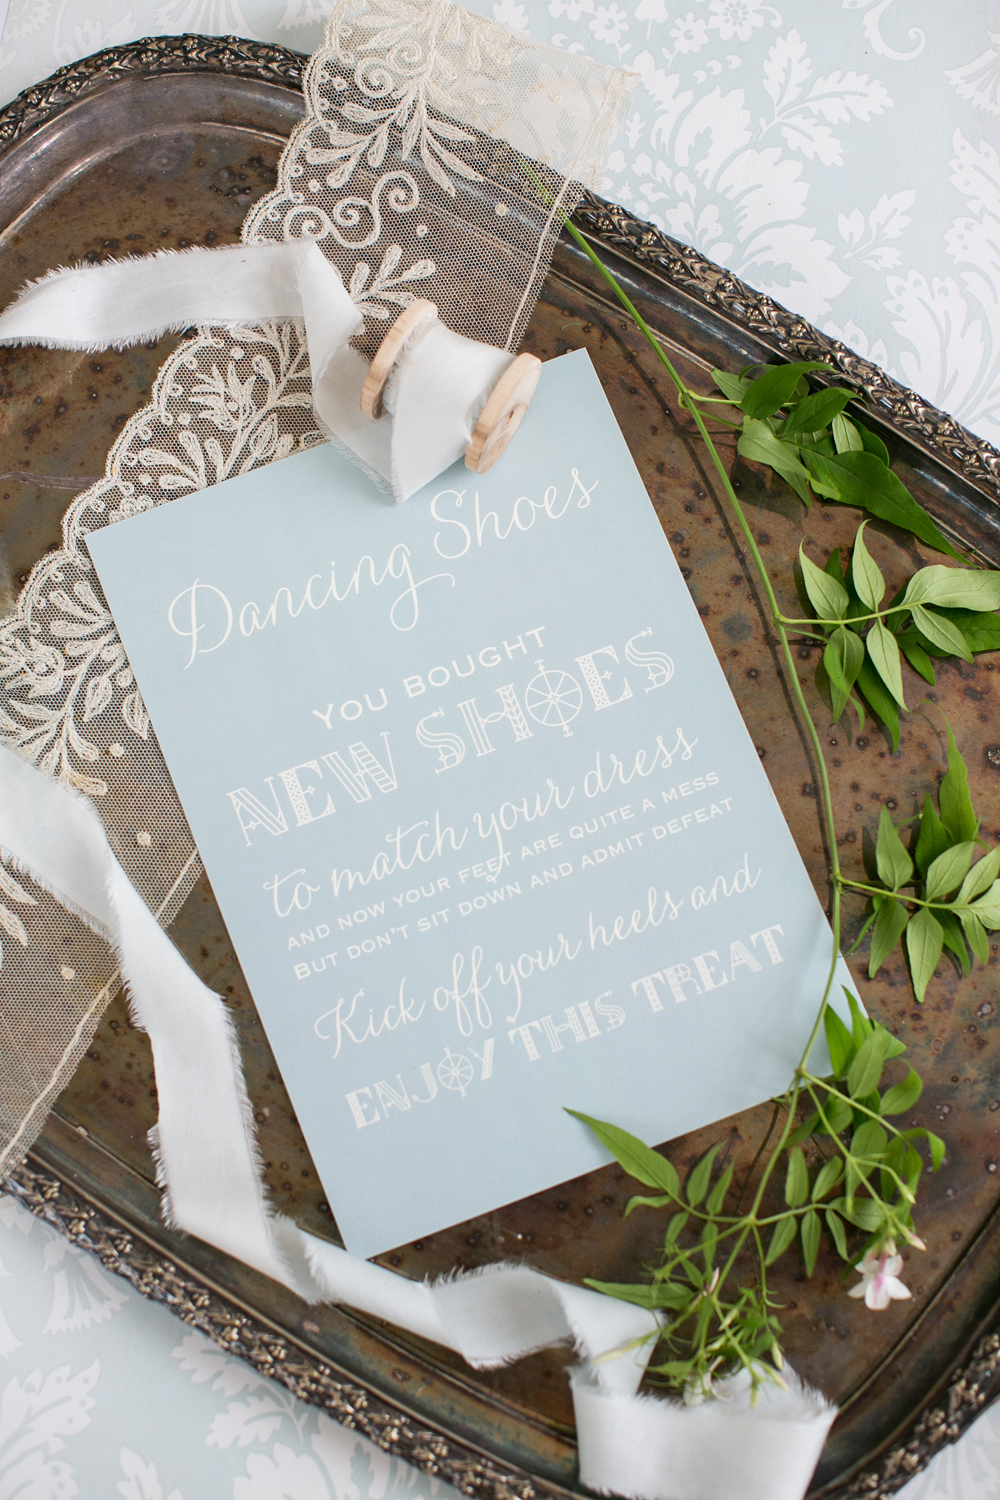 Sharn and Craig's pale blue and lace bespoke wedding stationery, for their Hedor House wedding